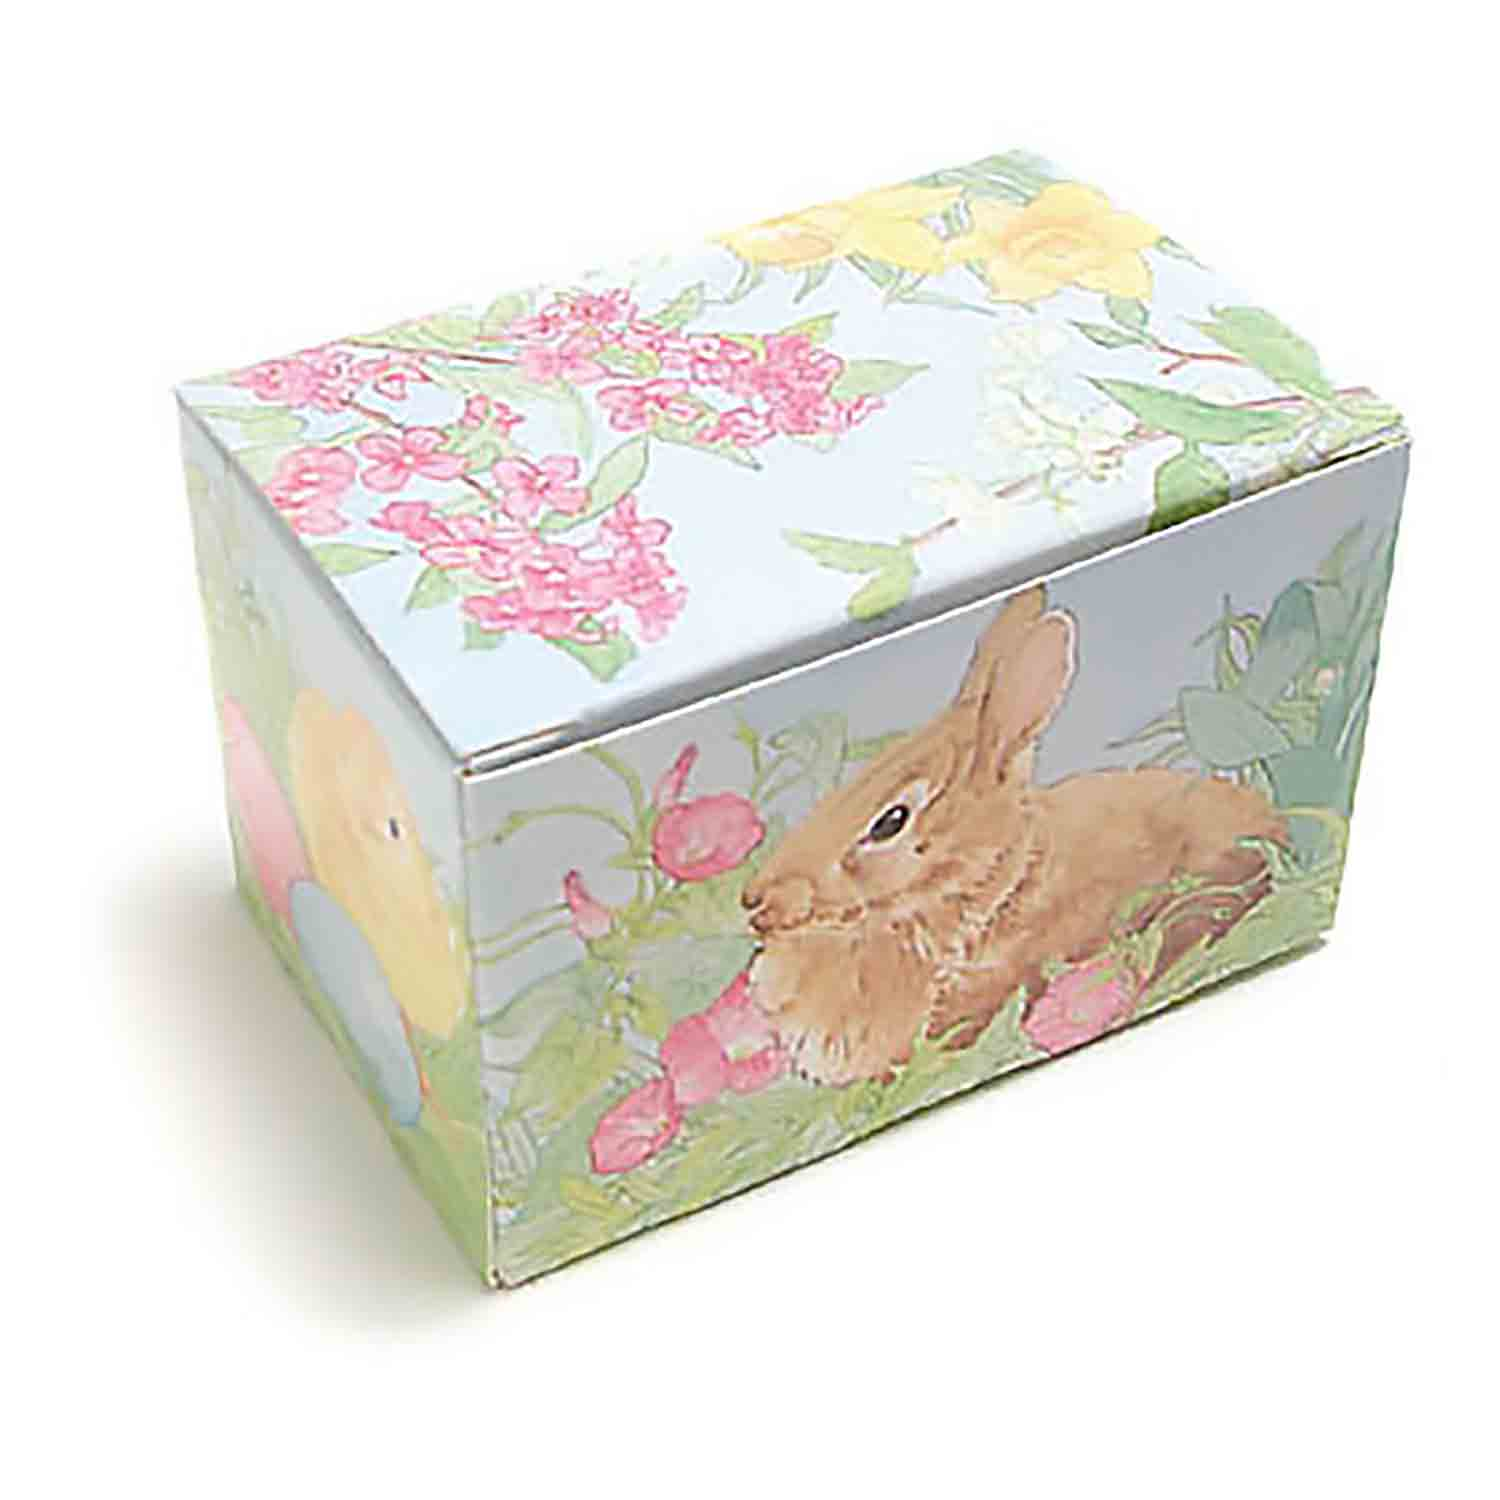 1/4 lb. Easter Garden Egg Candy Box